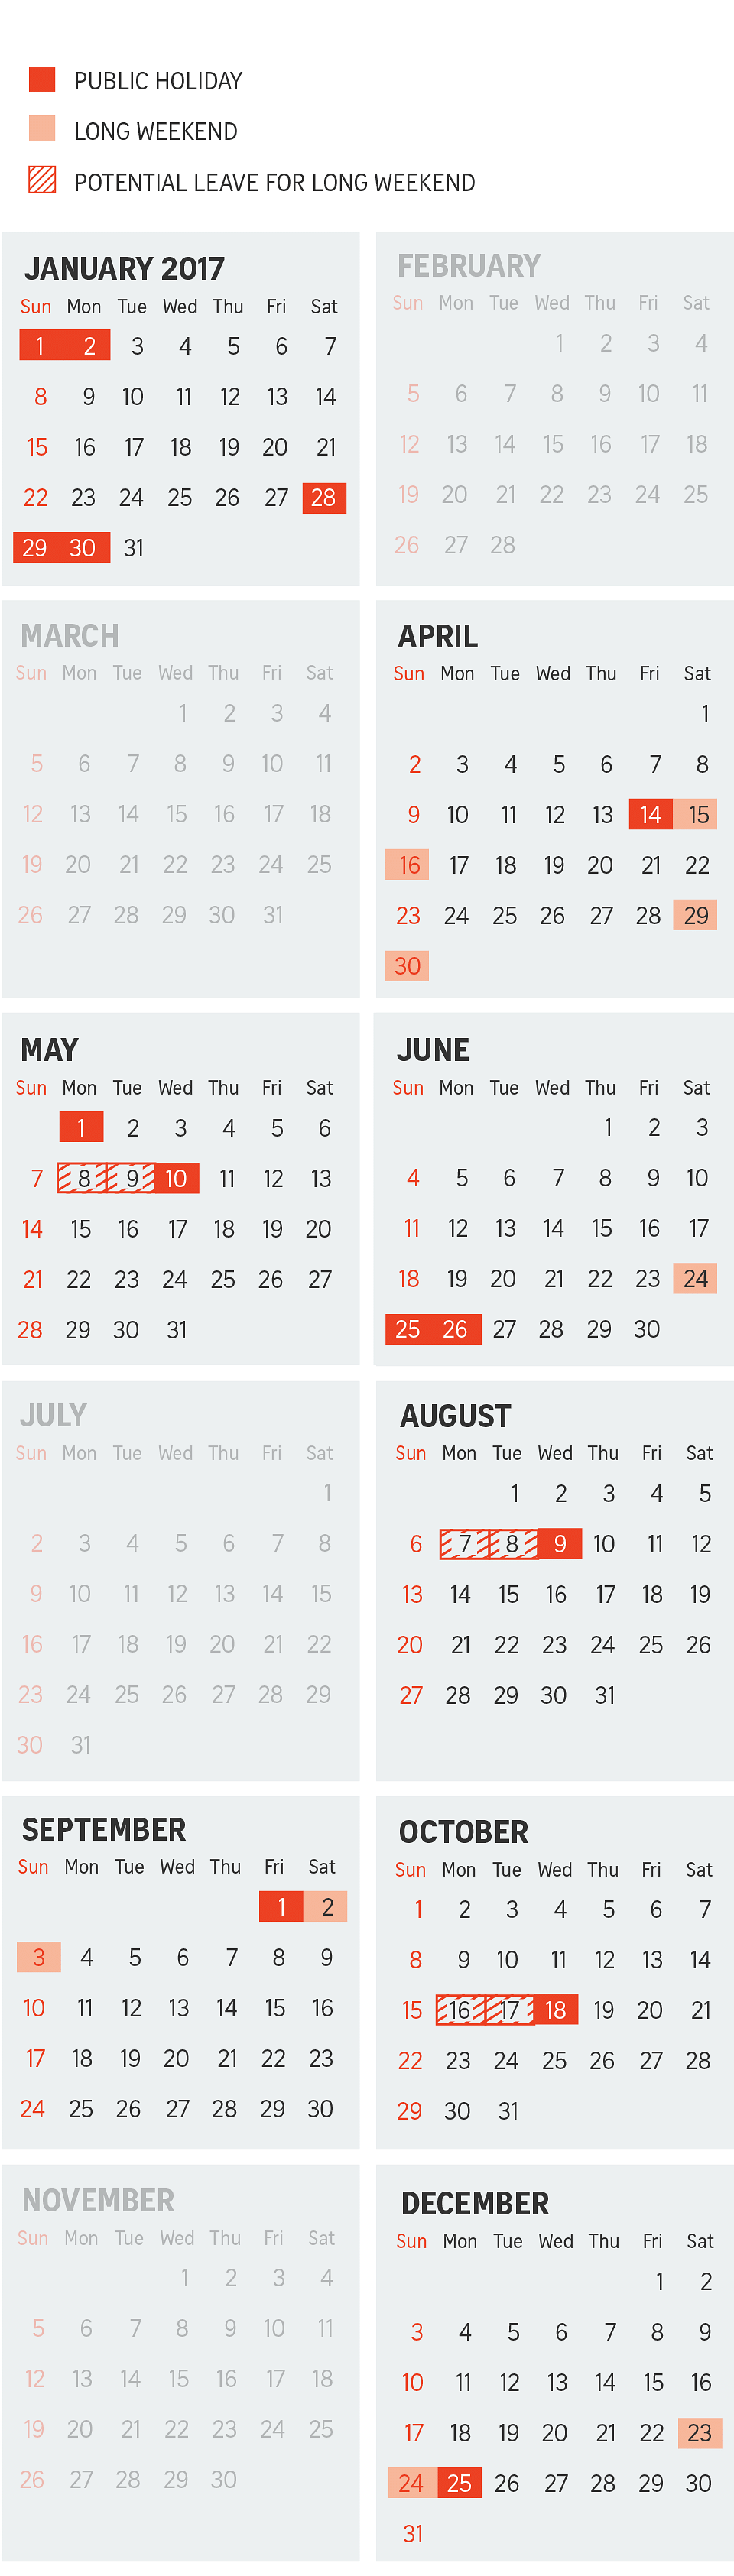 School Calendar Singapore : Seven long weekends in singapore for up from six